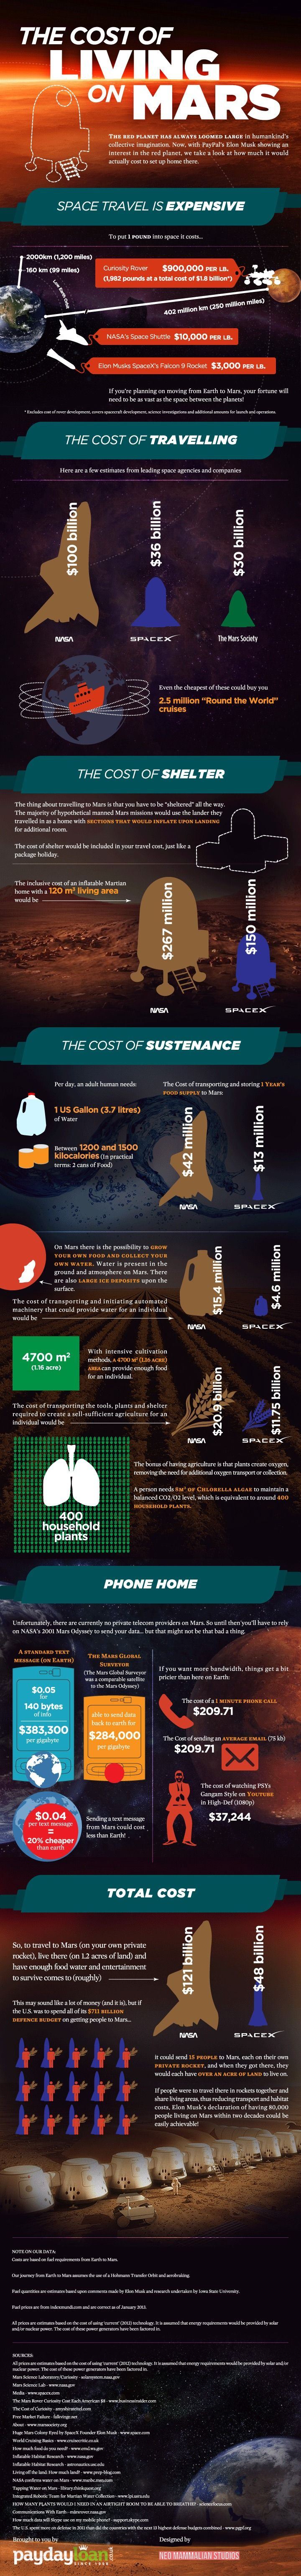 The Cost Of Living On Mars #infographic #Mars #Space #Travel